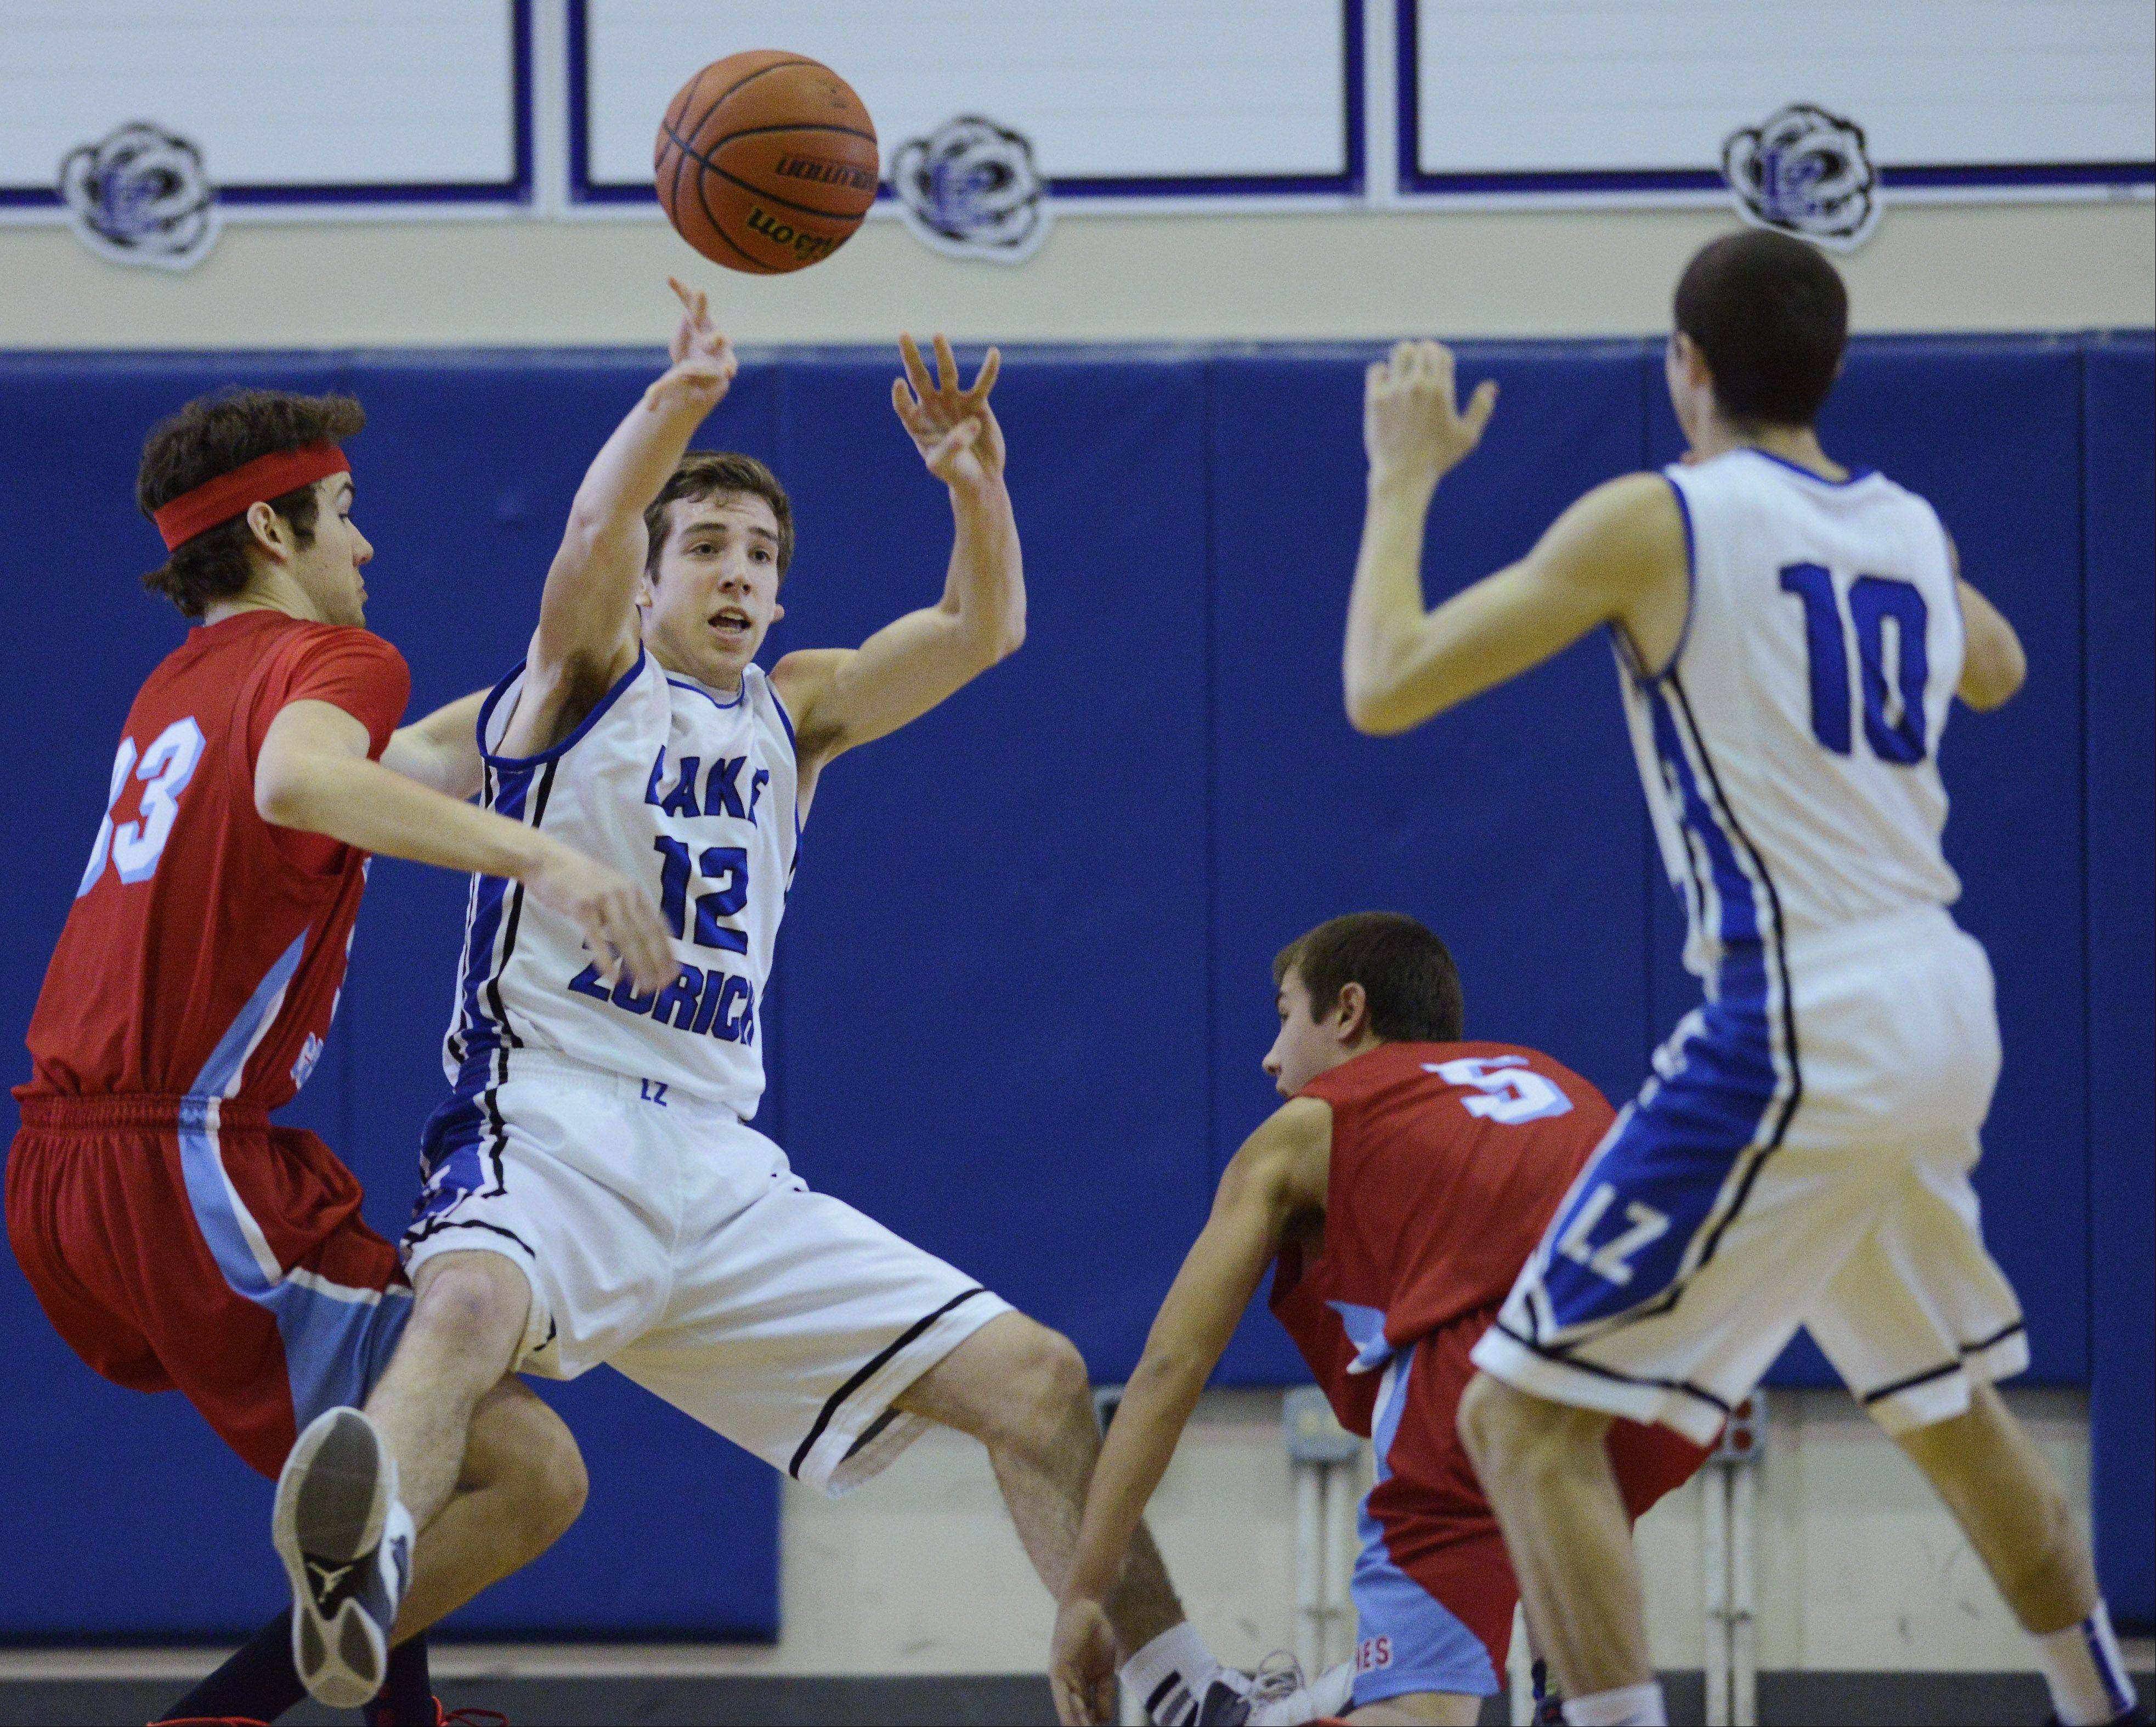 Lake Zurich's Corey Helgeson, second from left, passes the ball to teammate Dave Brown, right, after grabbing a loose ball between Marian Central's Quinn Haley, left, and Adam Pischke during the Martin Luther King Classic at Lake Zurich Saturday.